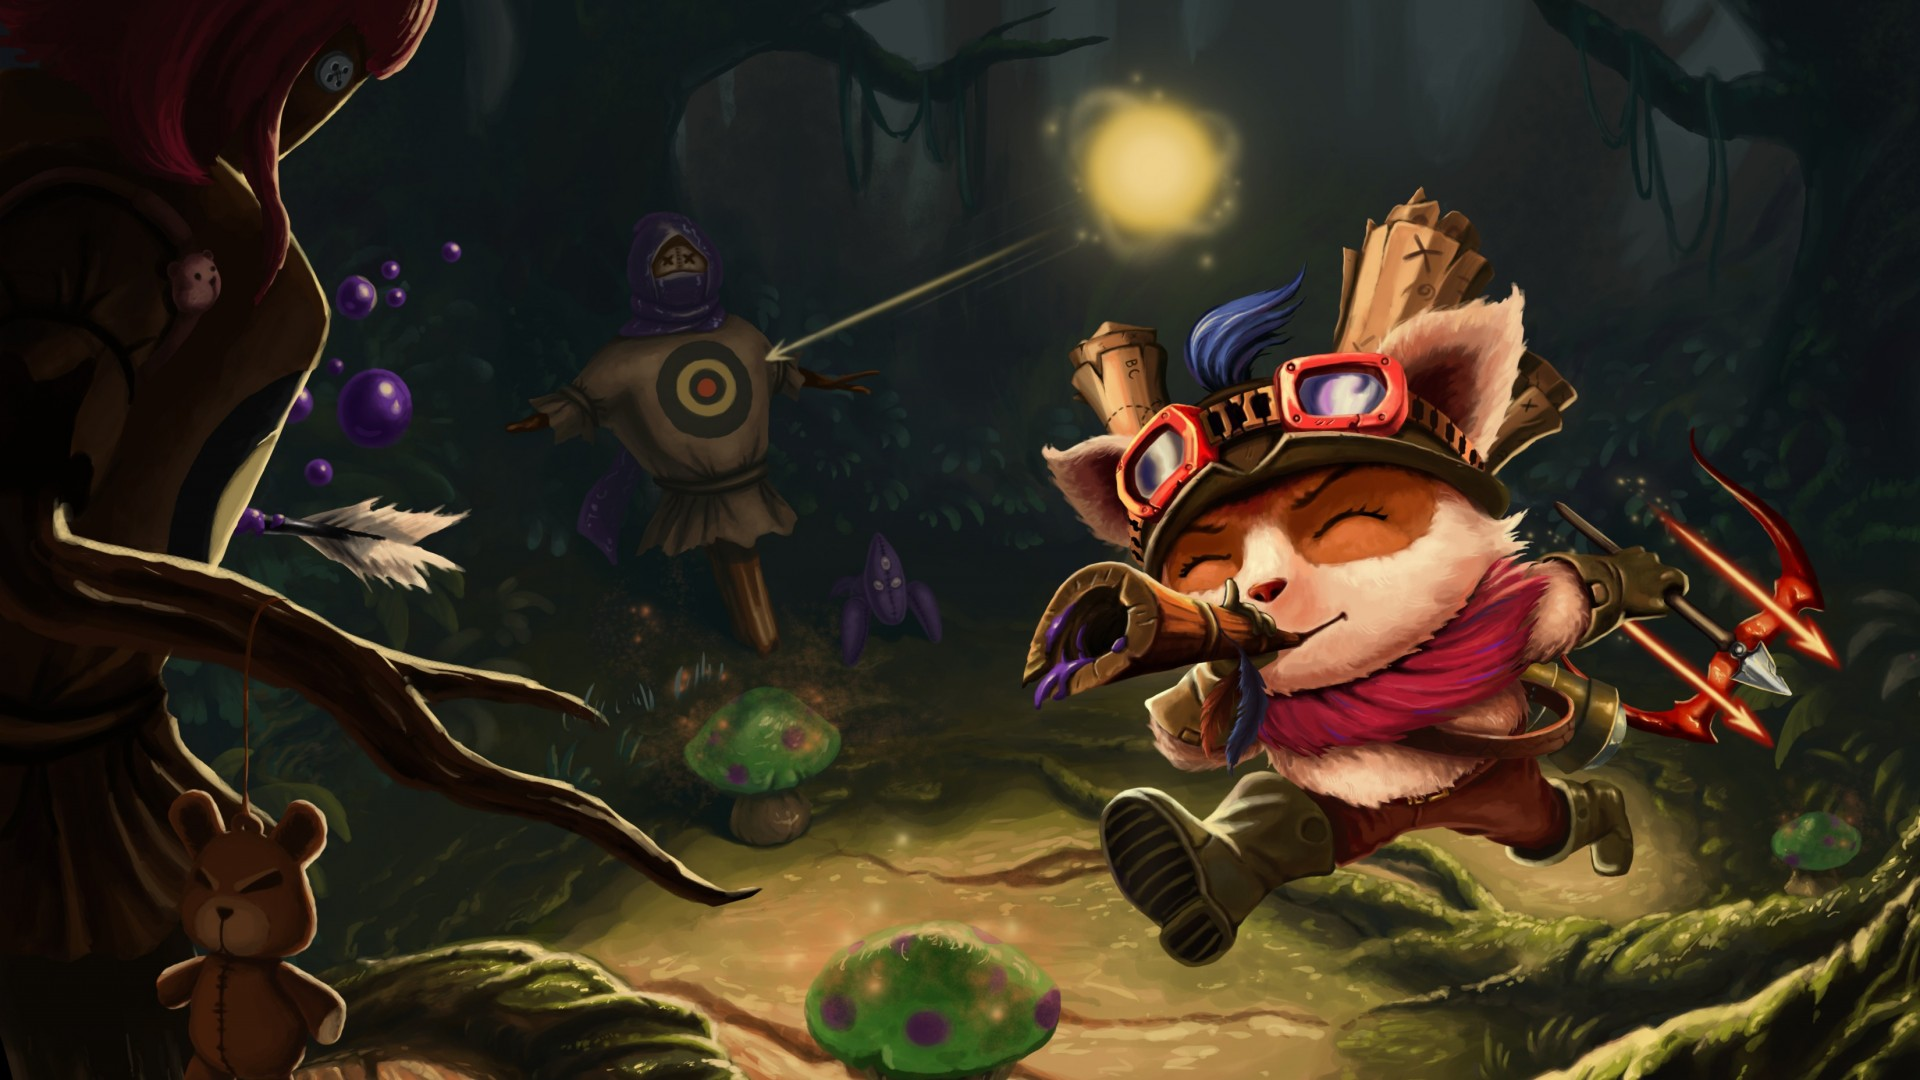 Lol Wallpapers: League Of Legends LoL Wallpapers